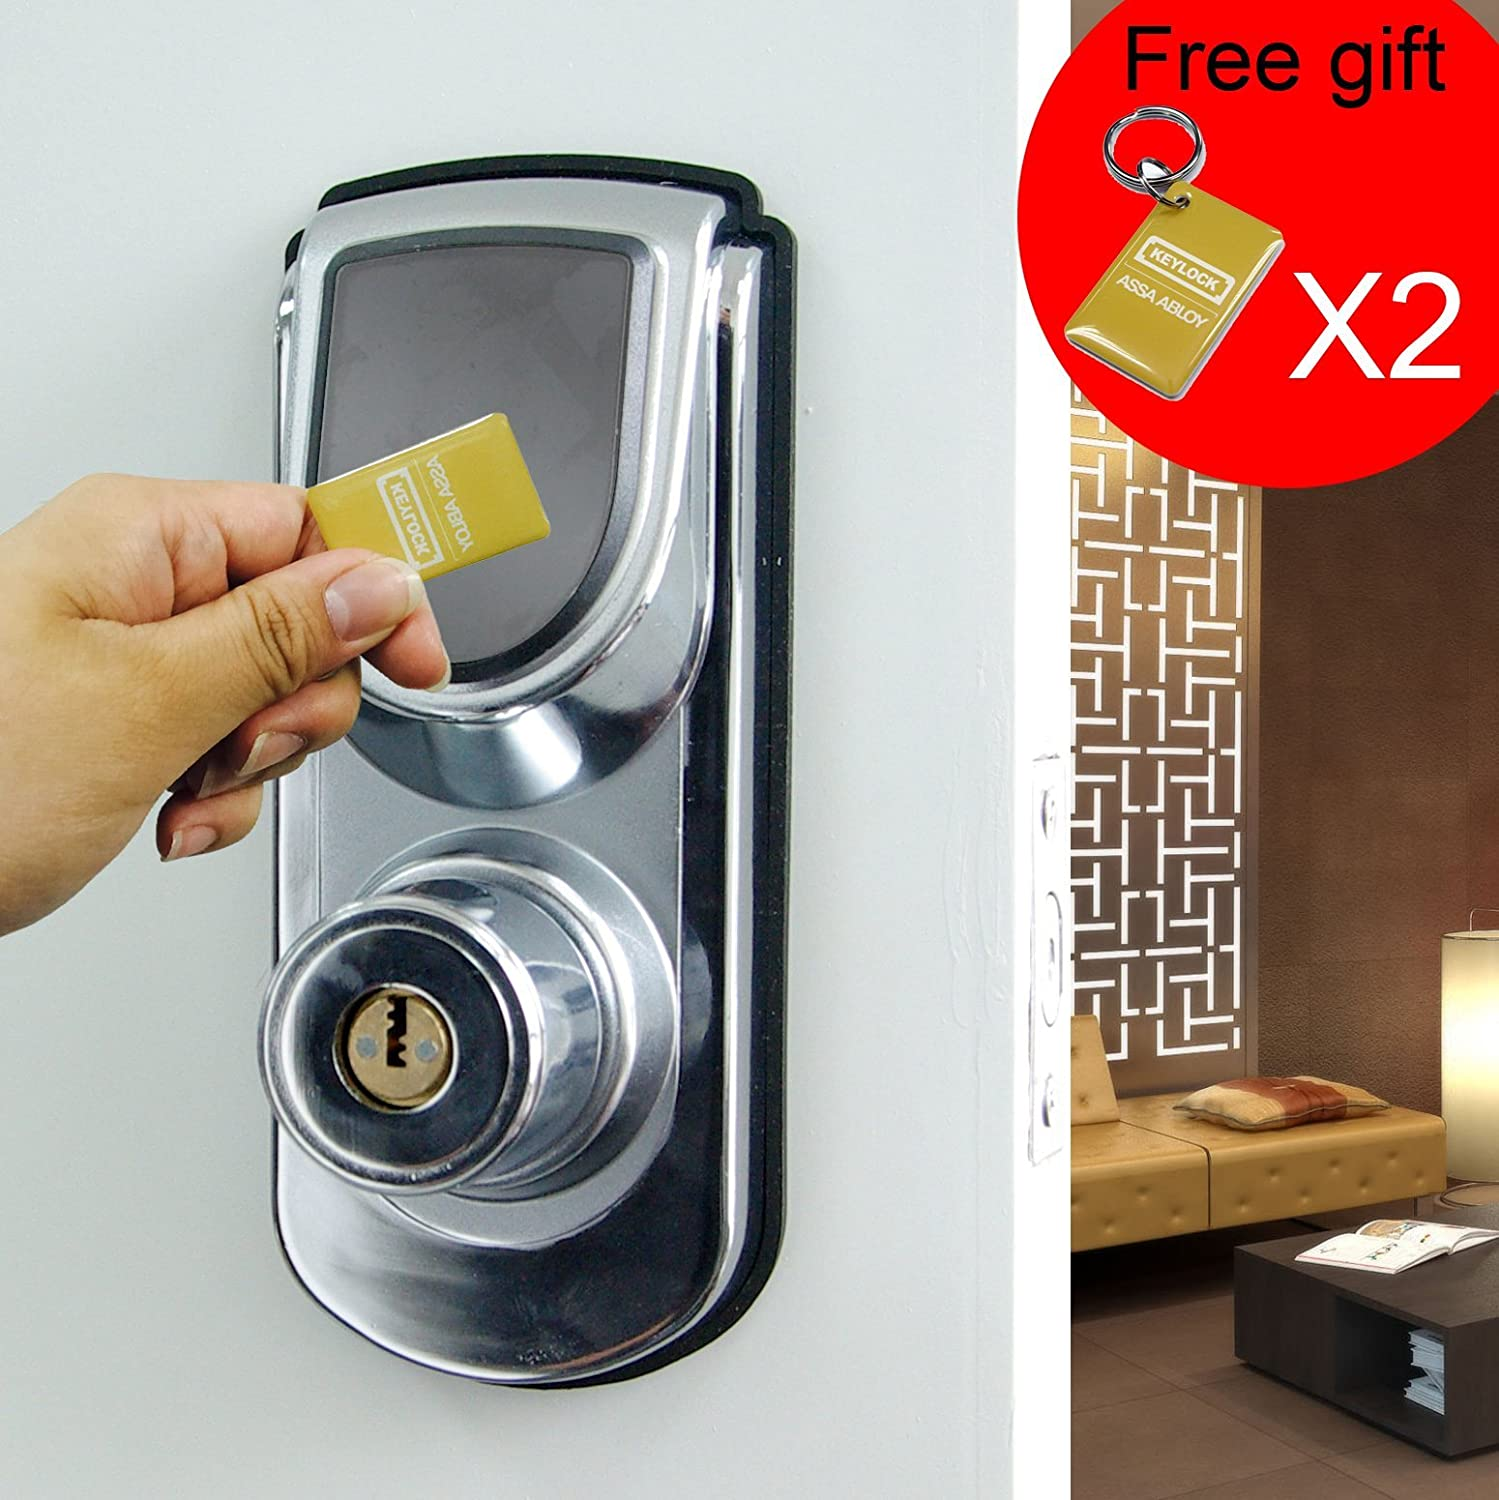 Keyless Smart Security Electronic Touch screen Keypad Door Lock Latch or Deadbolt Reversible Lever Handle Home Use Entry 6600-101 Silver (Deadbolt)